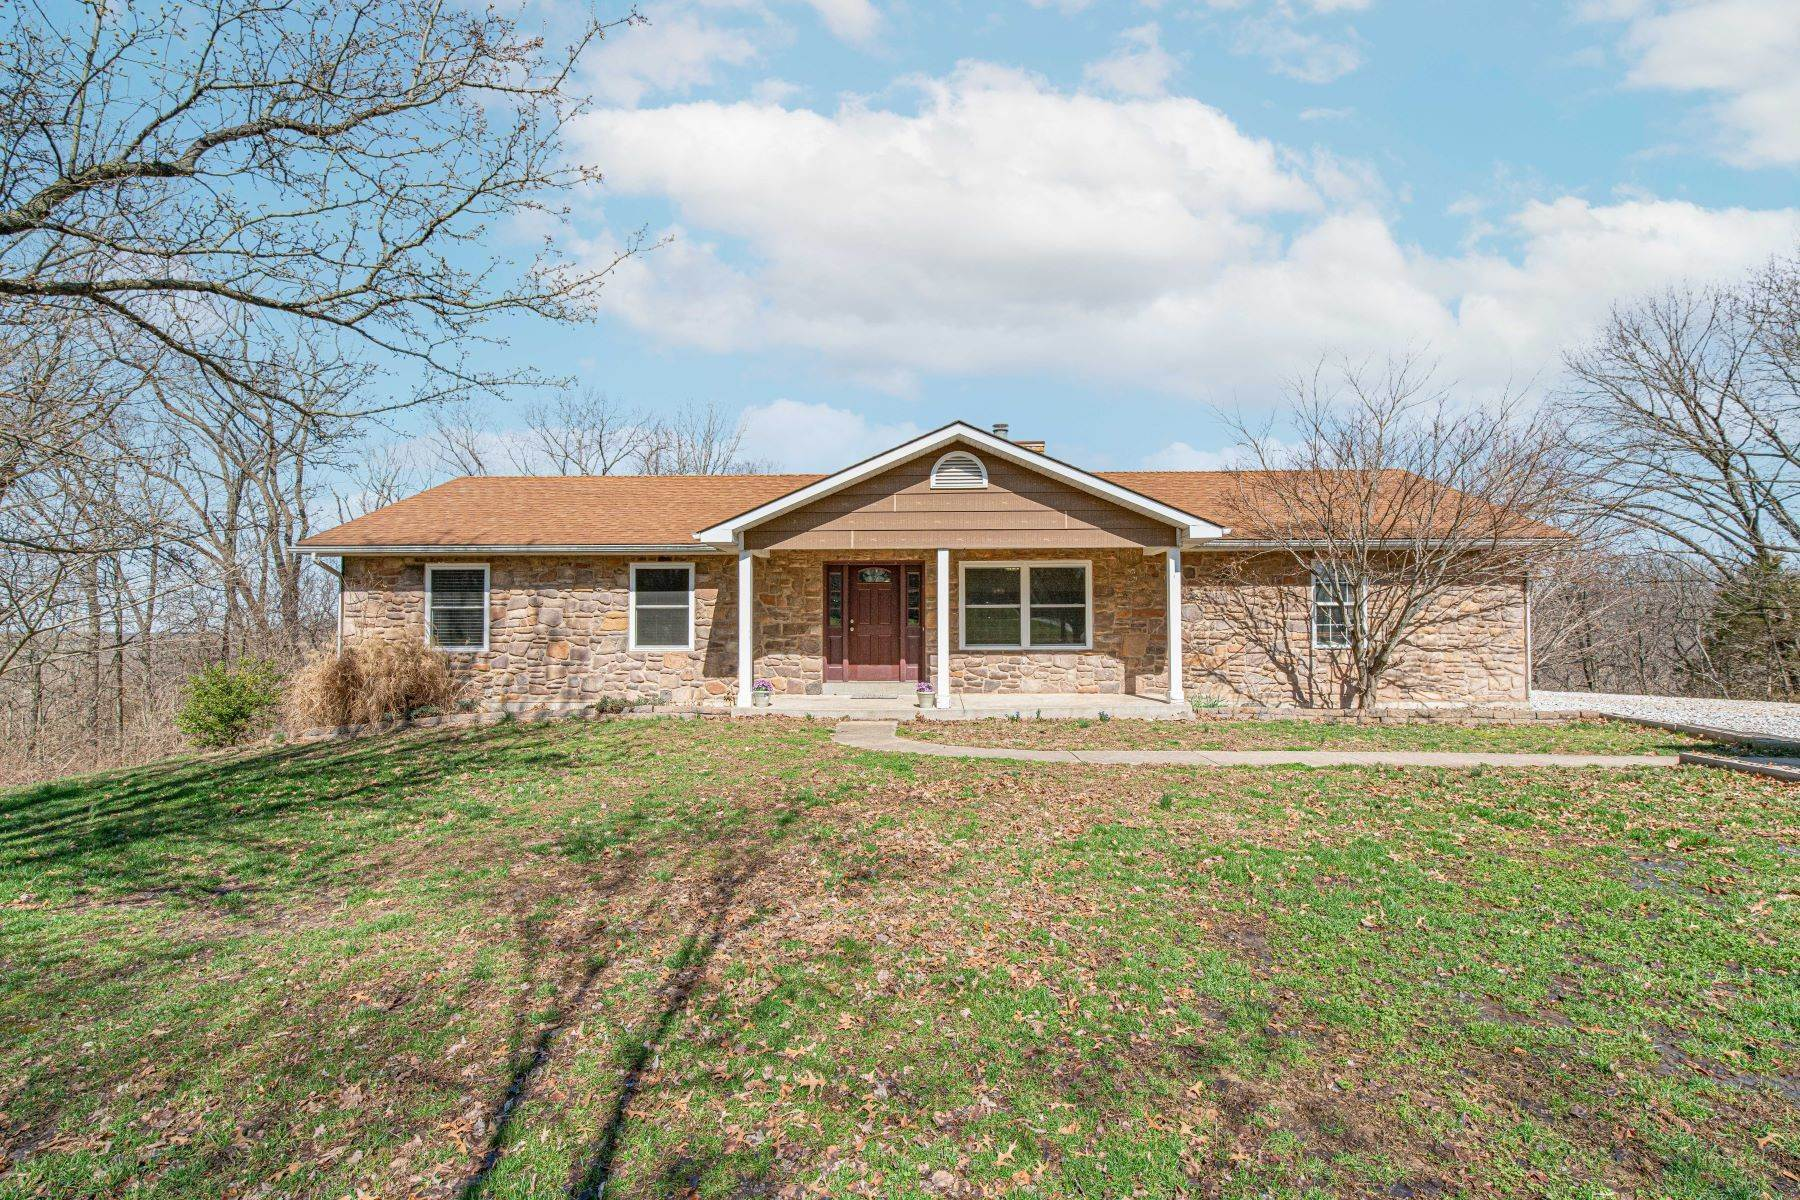 Single Family Homes for Sale at Beautiful ranch home situated on over 3 and a half acres 3289 Dean Lane O Fallon, Missouri 63366 United States